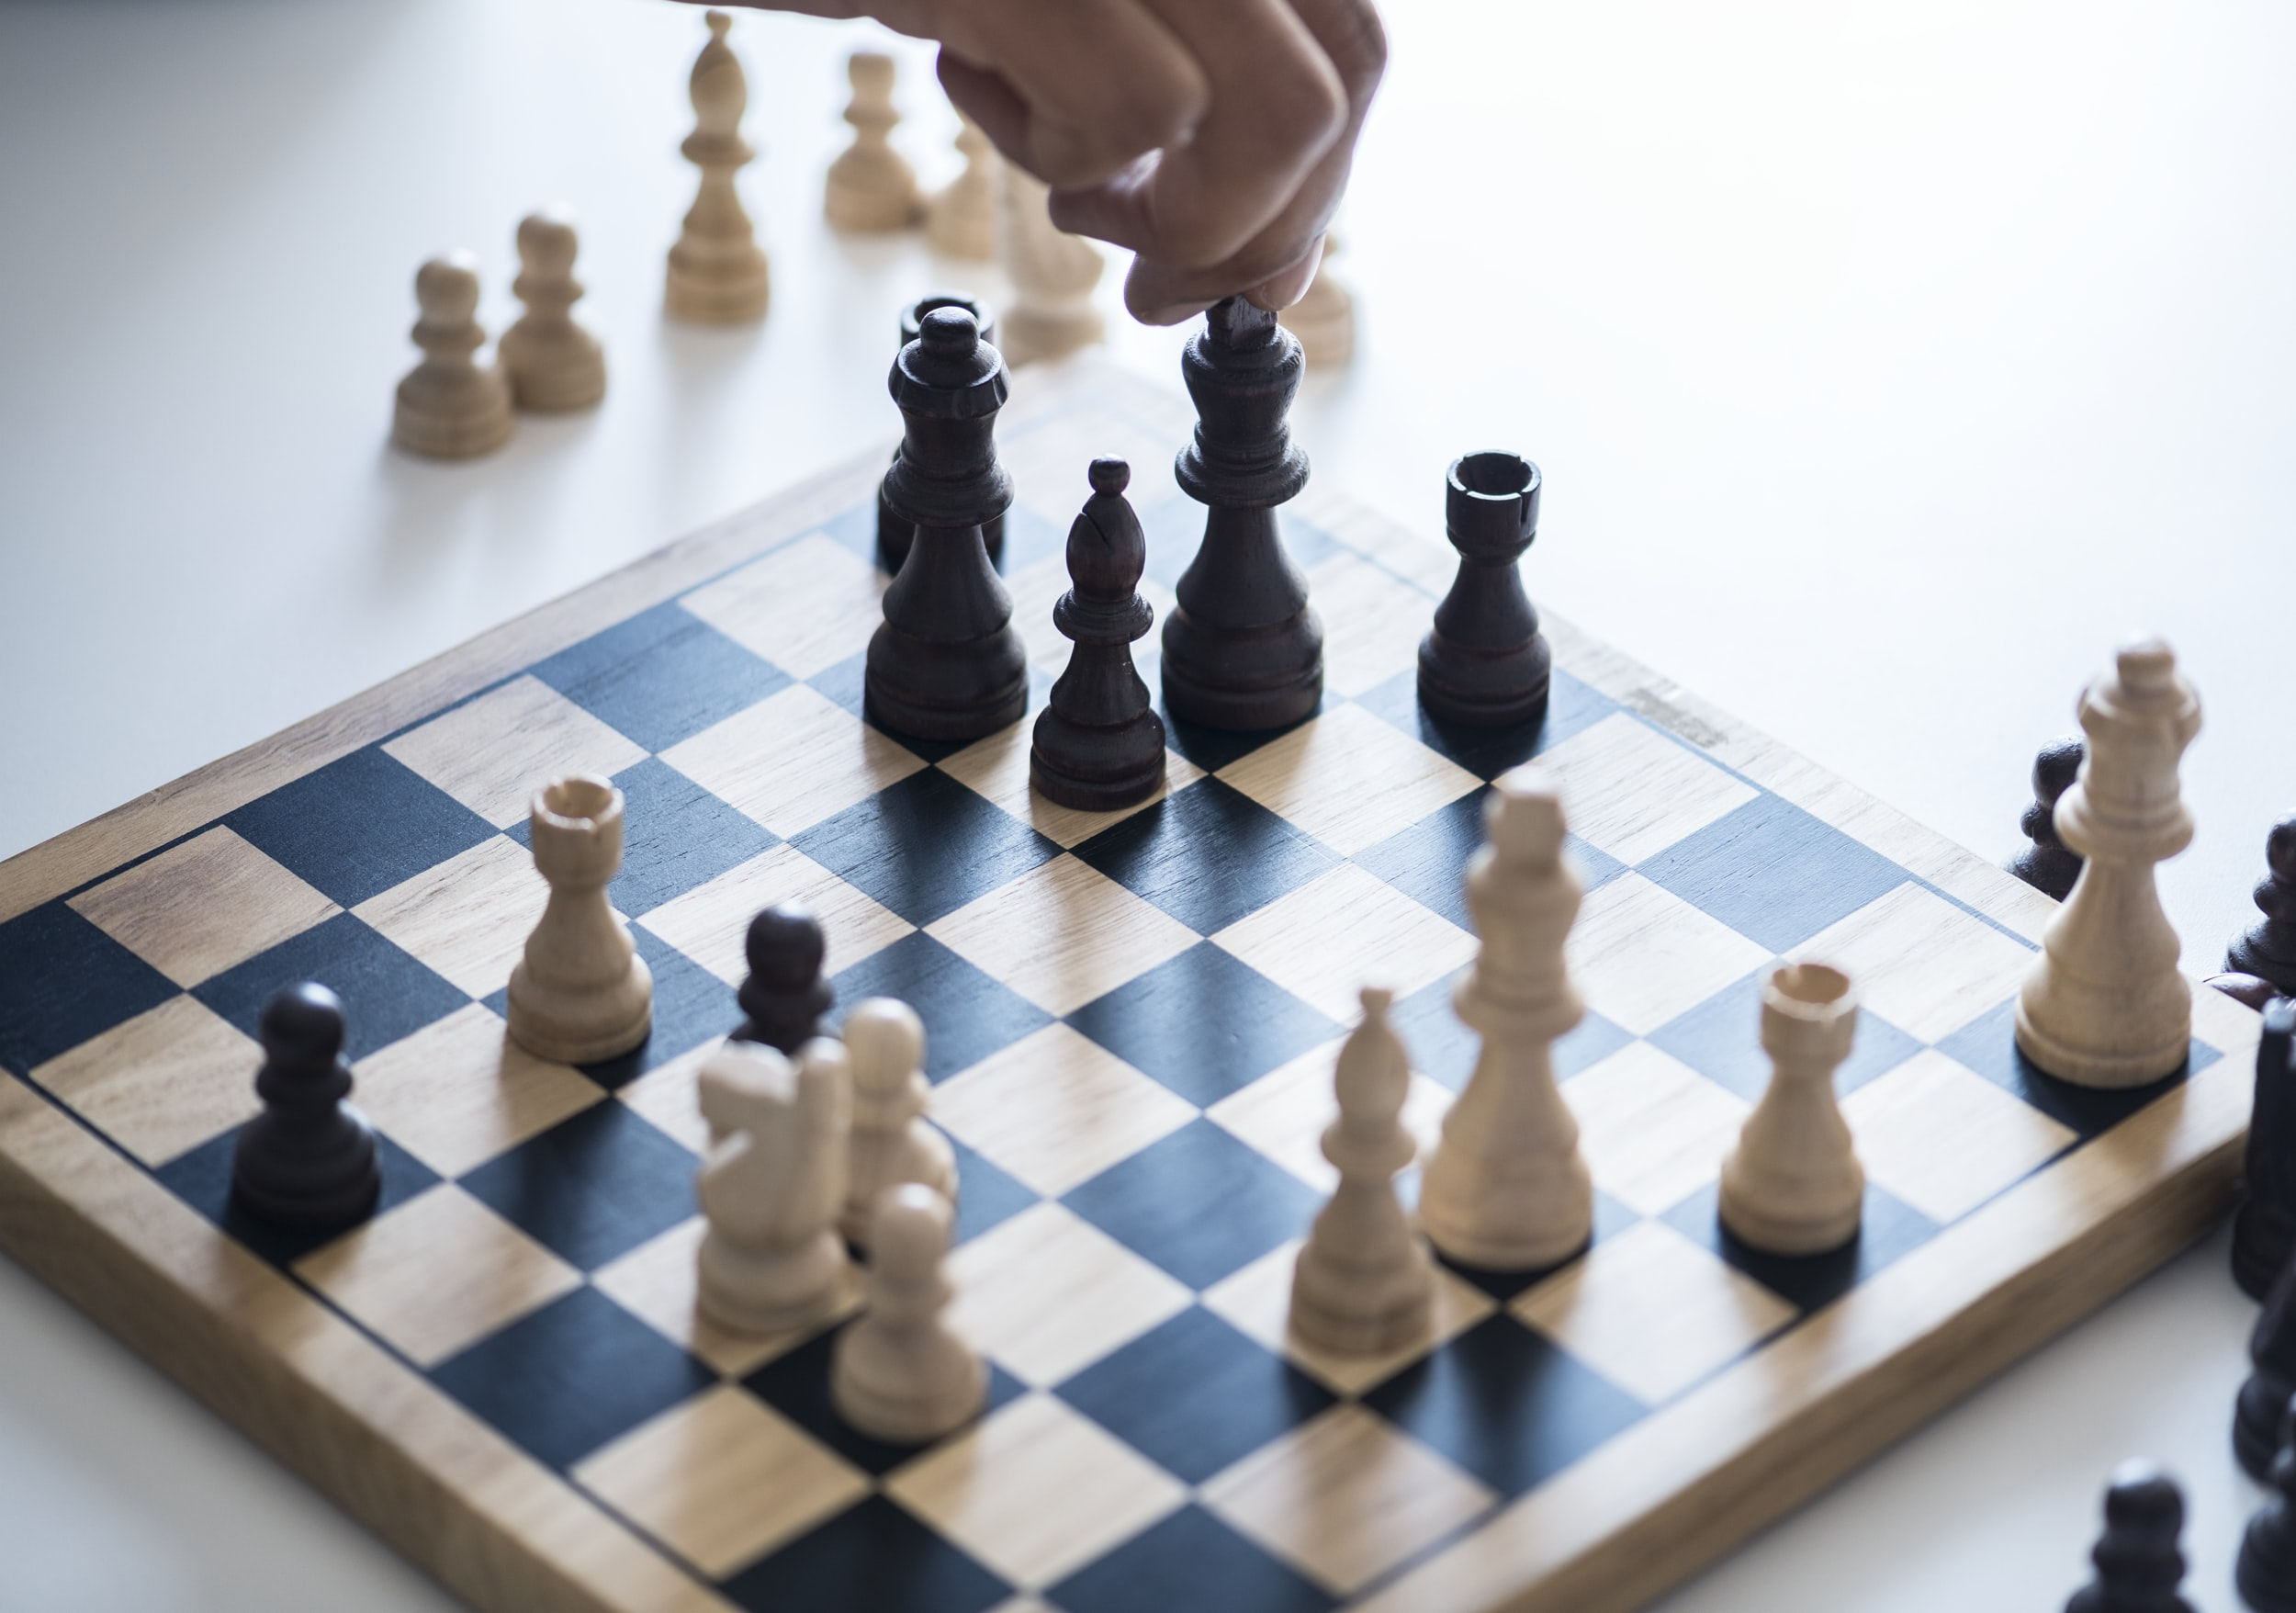 person making move on brown and black wooden chessboard with pieces